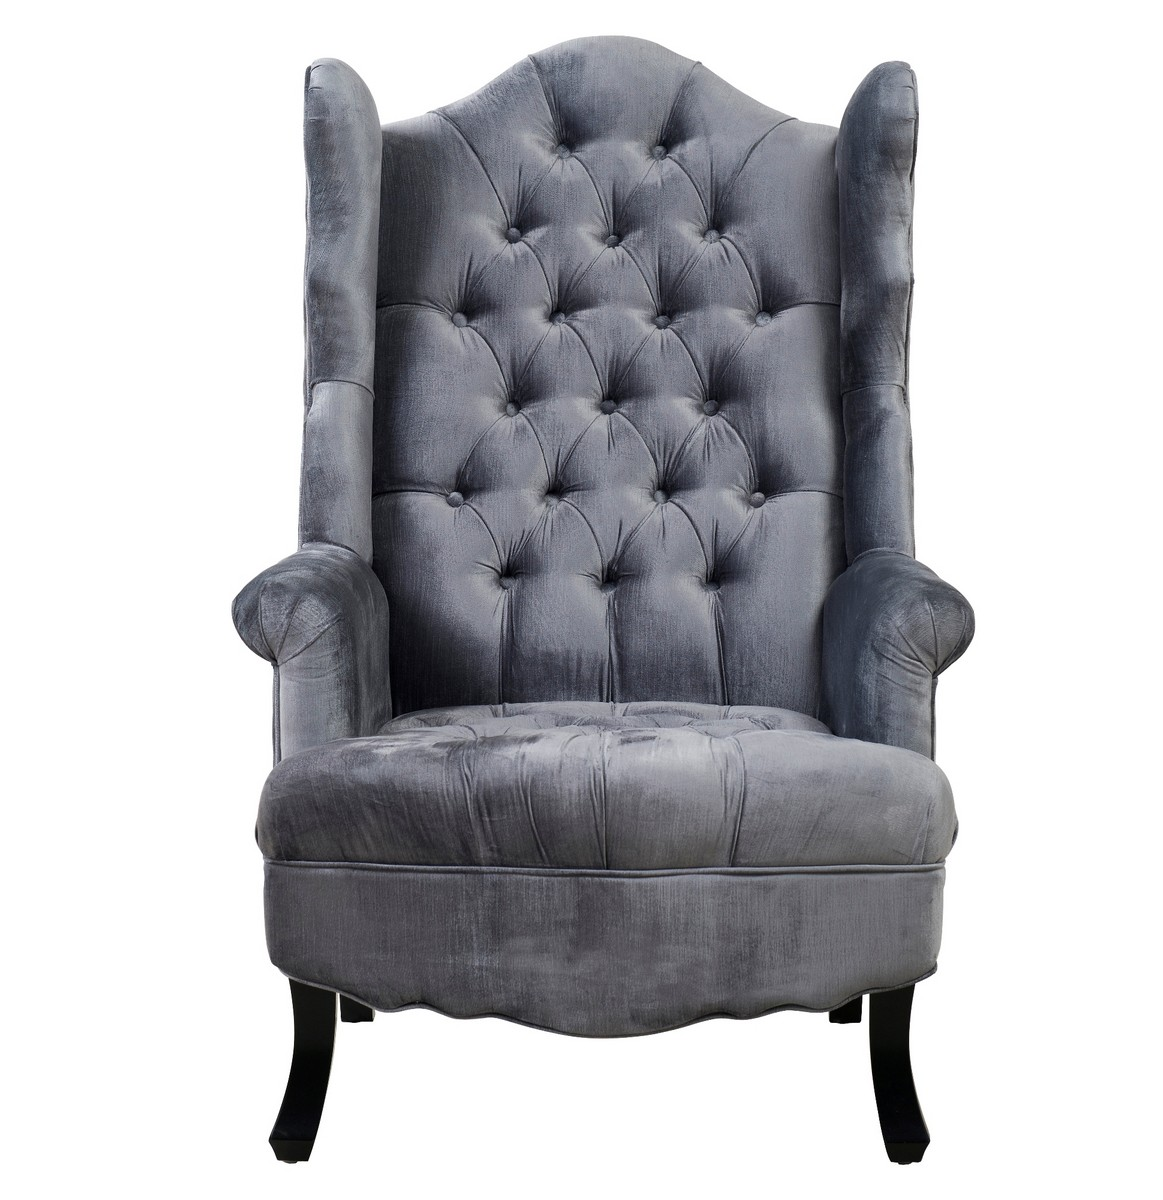 grey wing chair foldaway picnic table and chairs tov furniture madison velvet a35 at